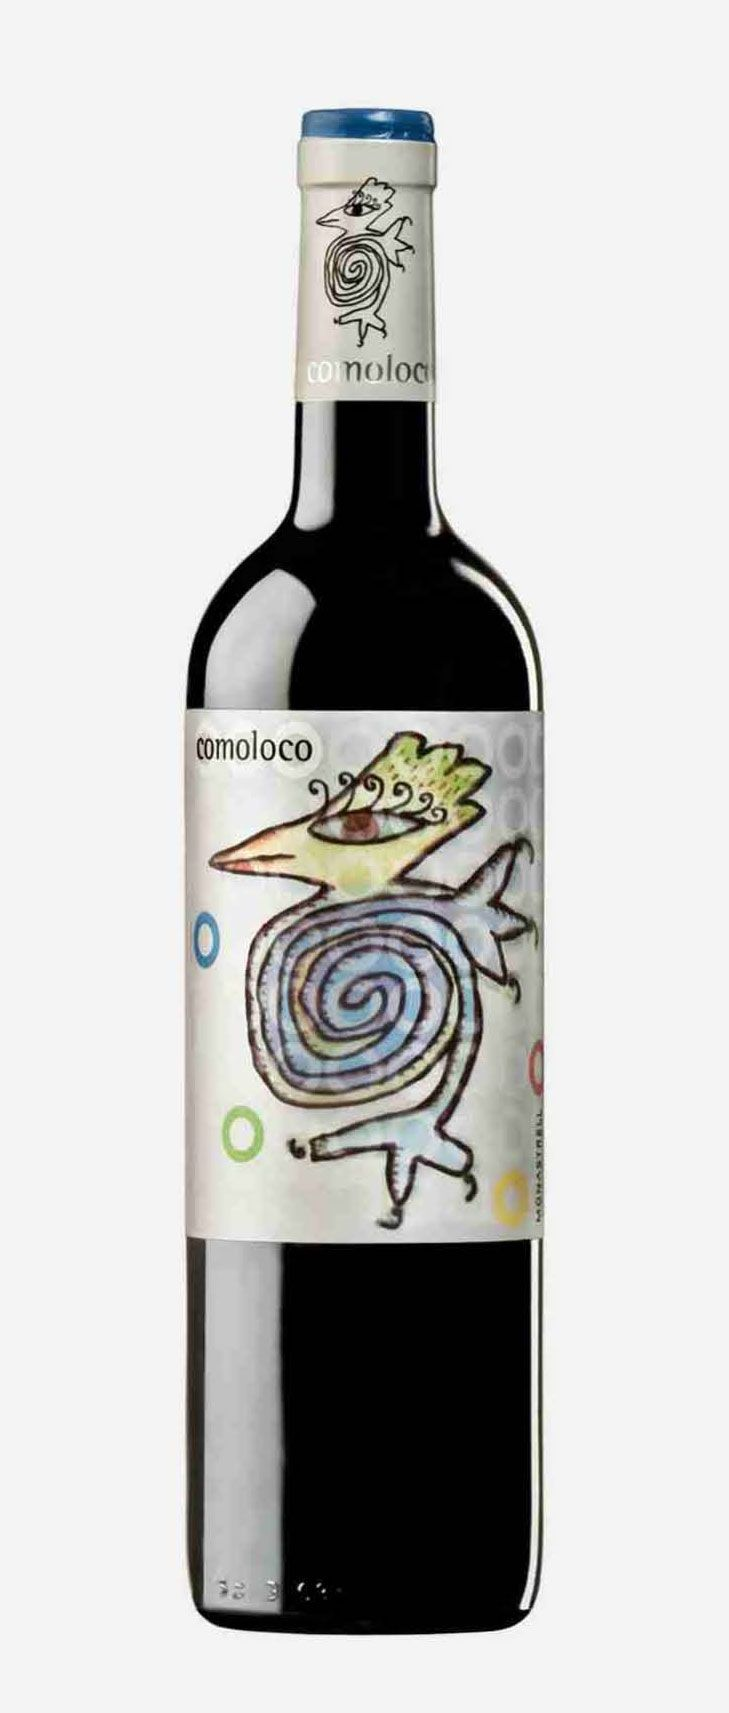 comoloco 2011 cute critter on this #wine #packaging PD wine / vinho / vino mxm